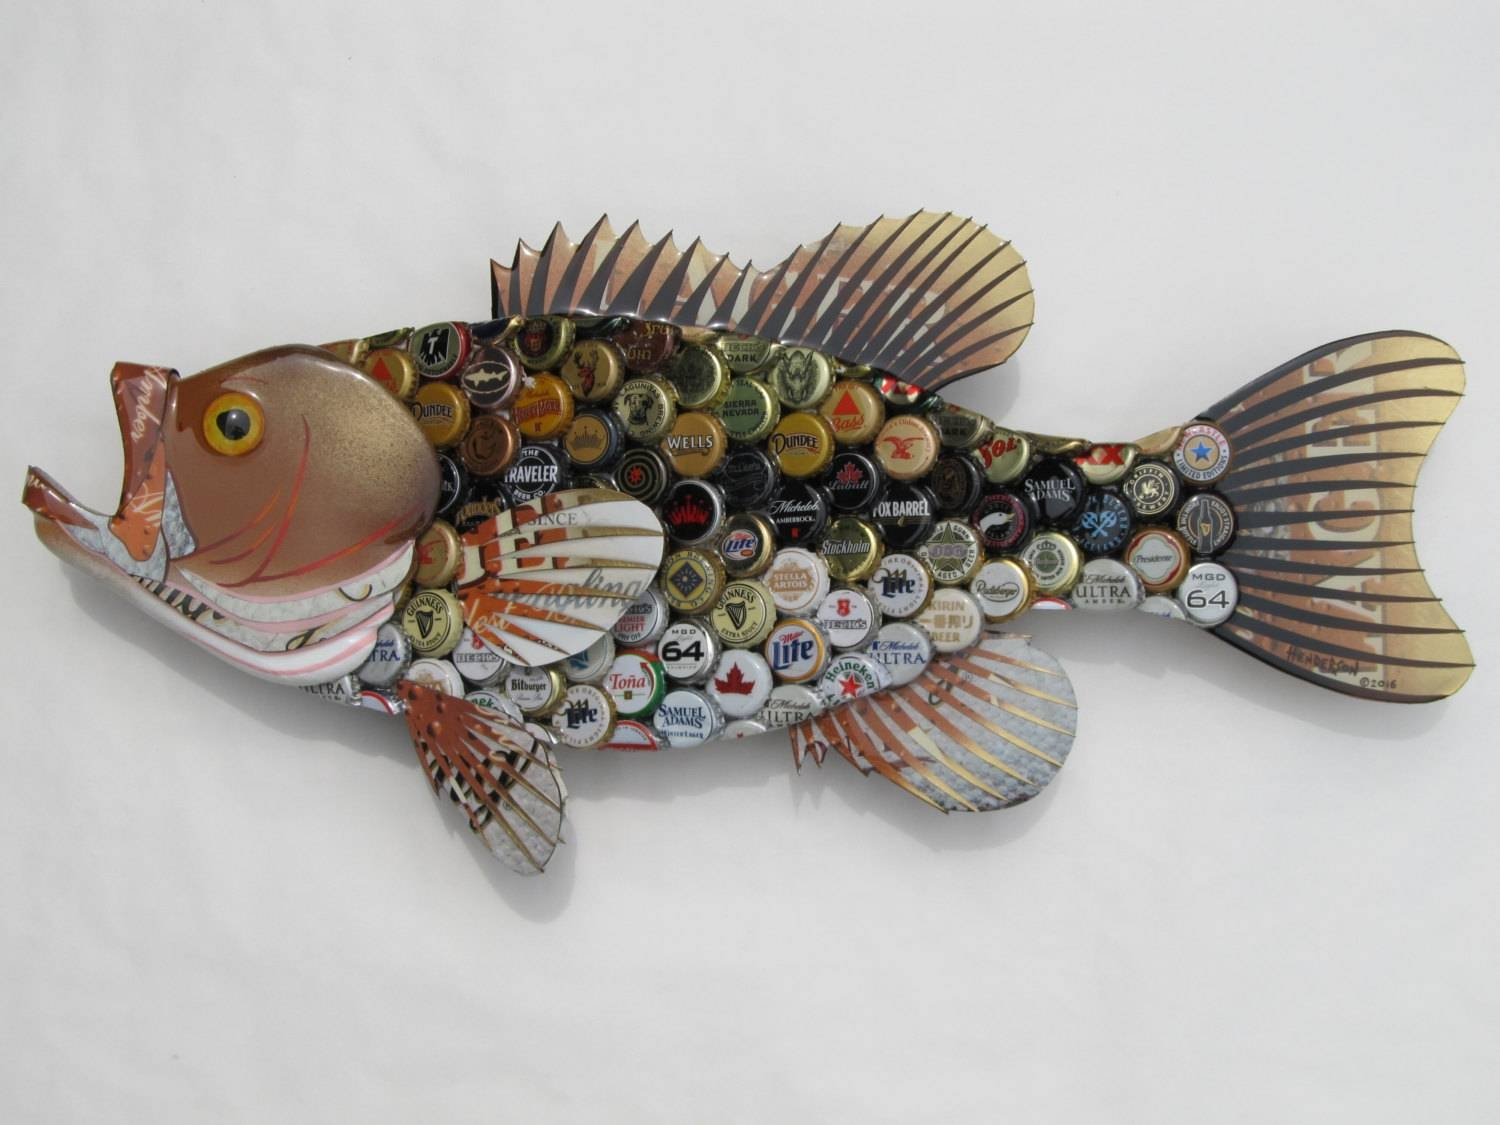 Bottlecap Fish Metal Wall Art Large Mouth Bass With Regard To Most Recent Fish Metal Wall Art (View 2 of 20)